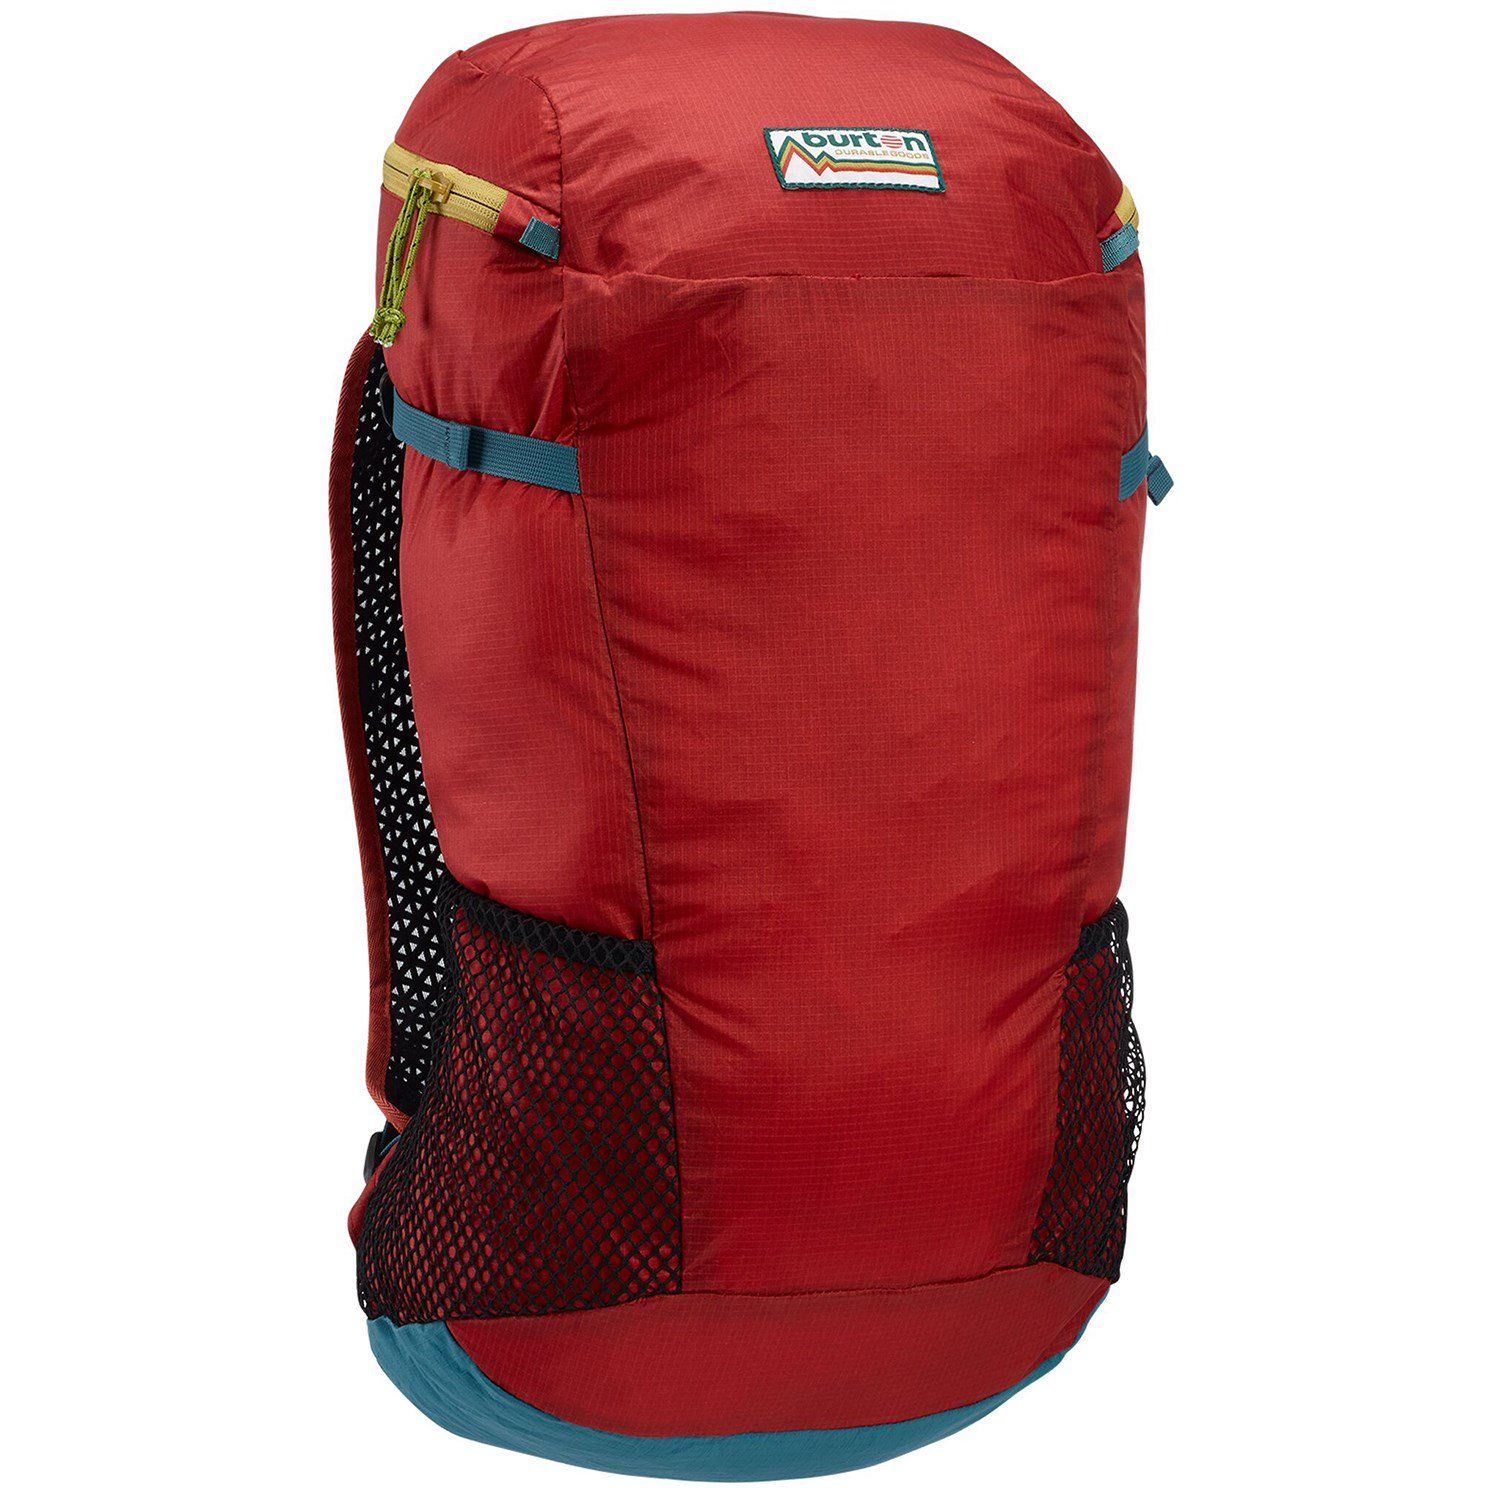 Photo of Burton Skyward 25L Packable Backpack 2019 in Red | Nylon